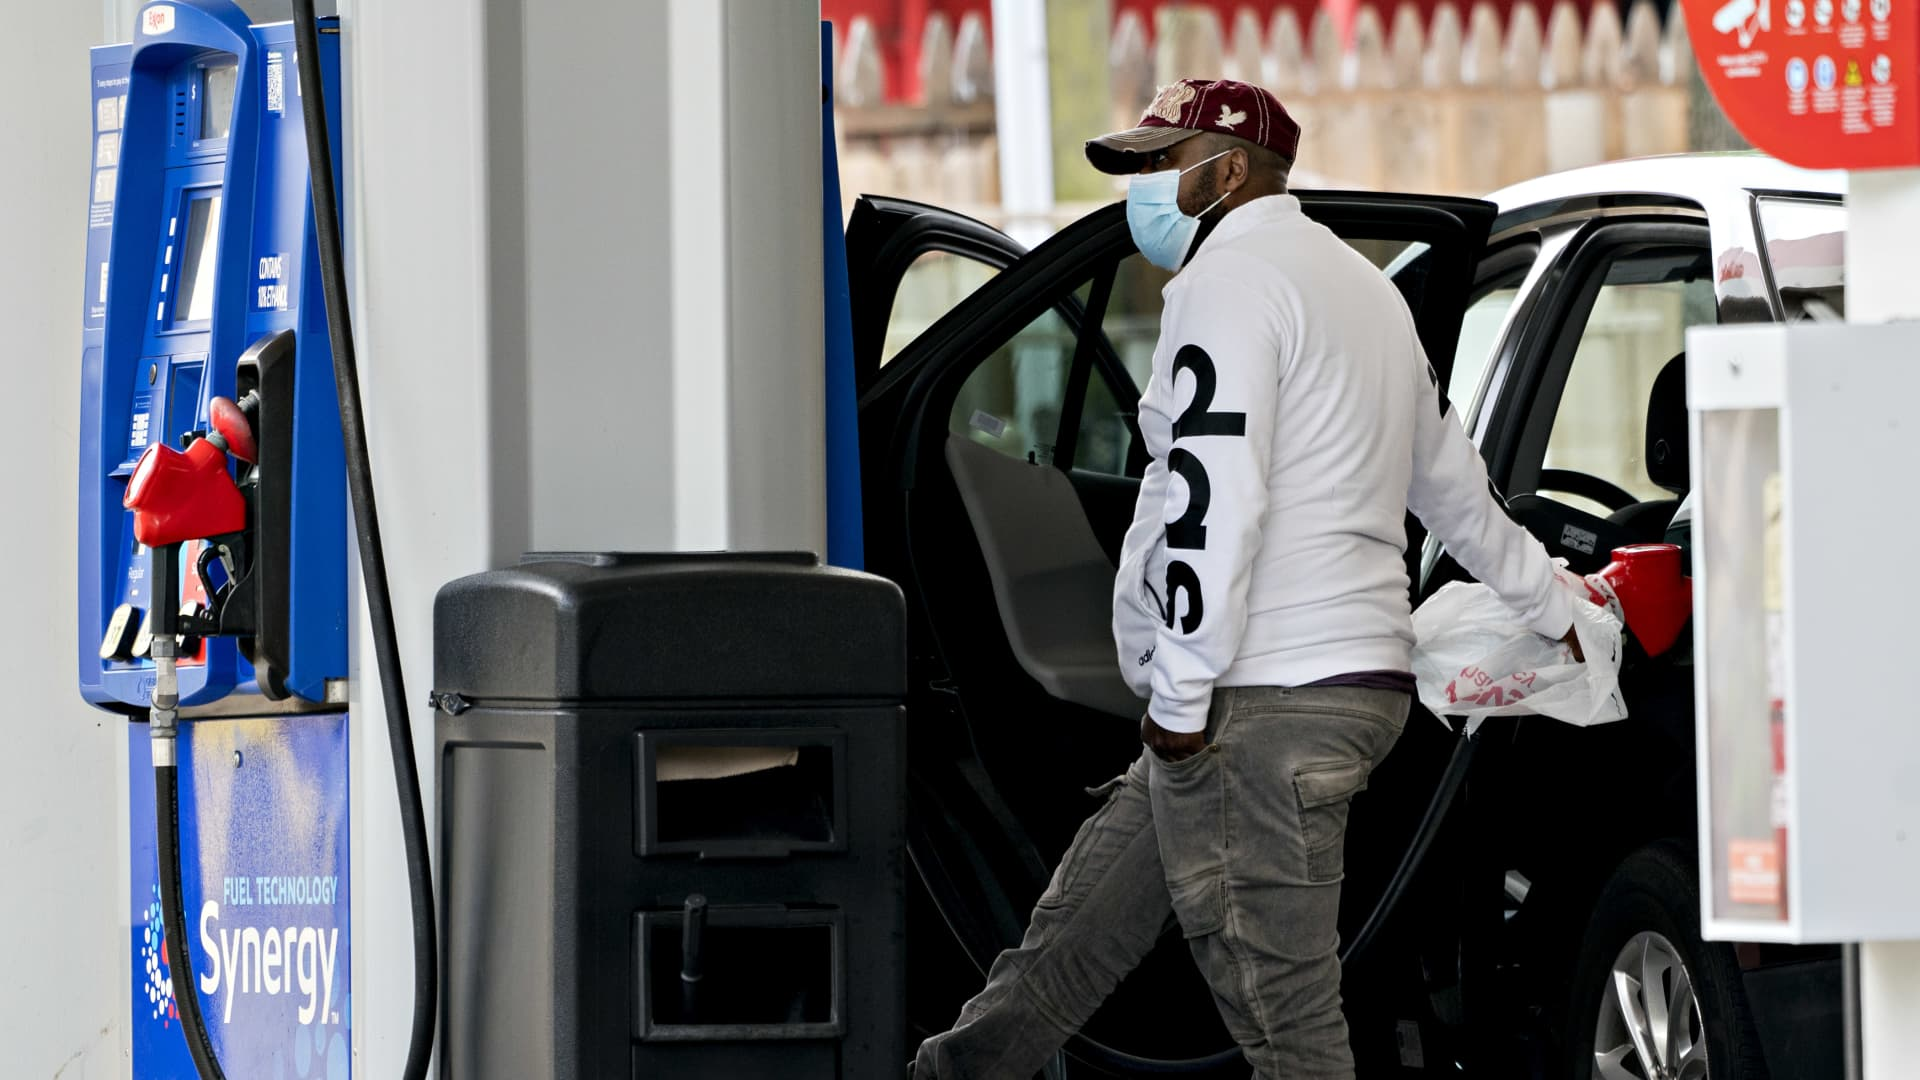 A customer wearing a protective mask uses a plastic shopping bag to hold a fuel nozzle while refueling a vehicle at an Exxon Mobil Corp. gas station in Arlington, Virginia.